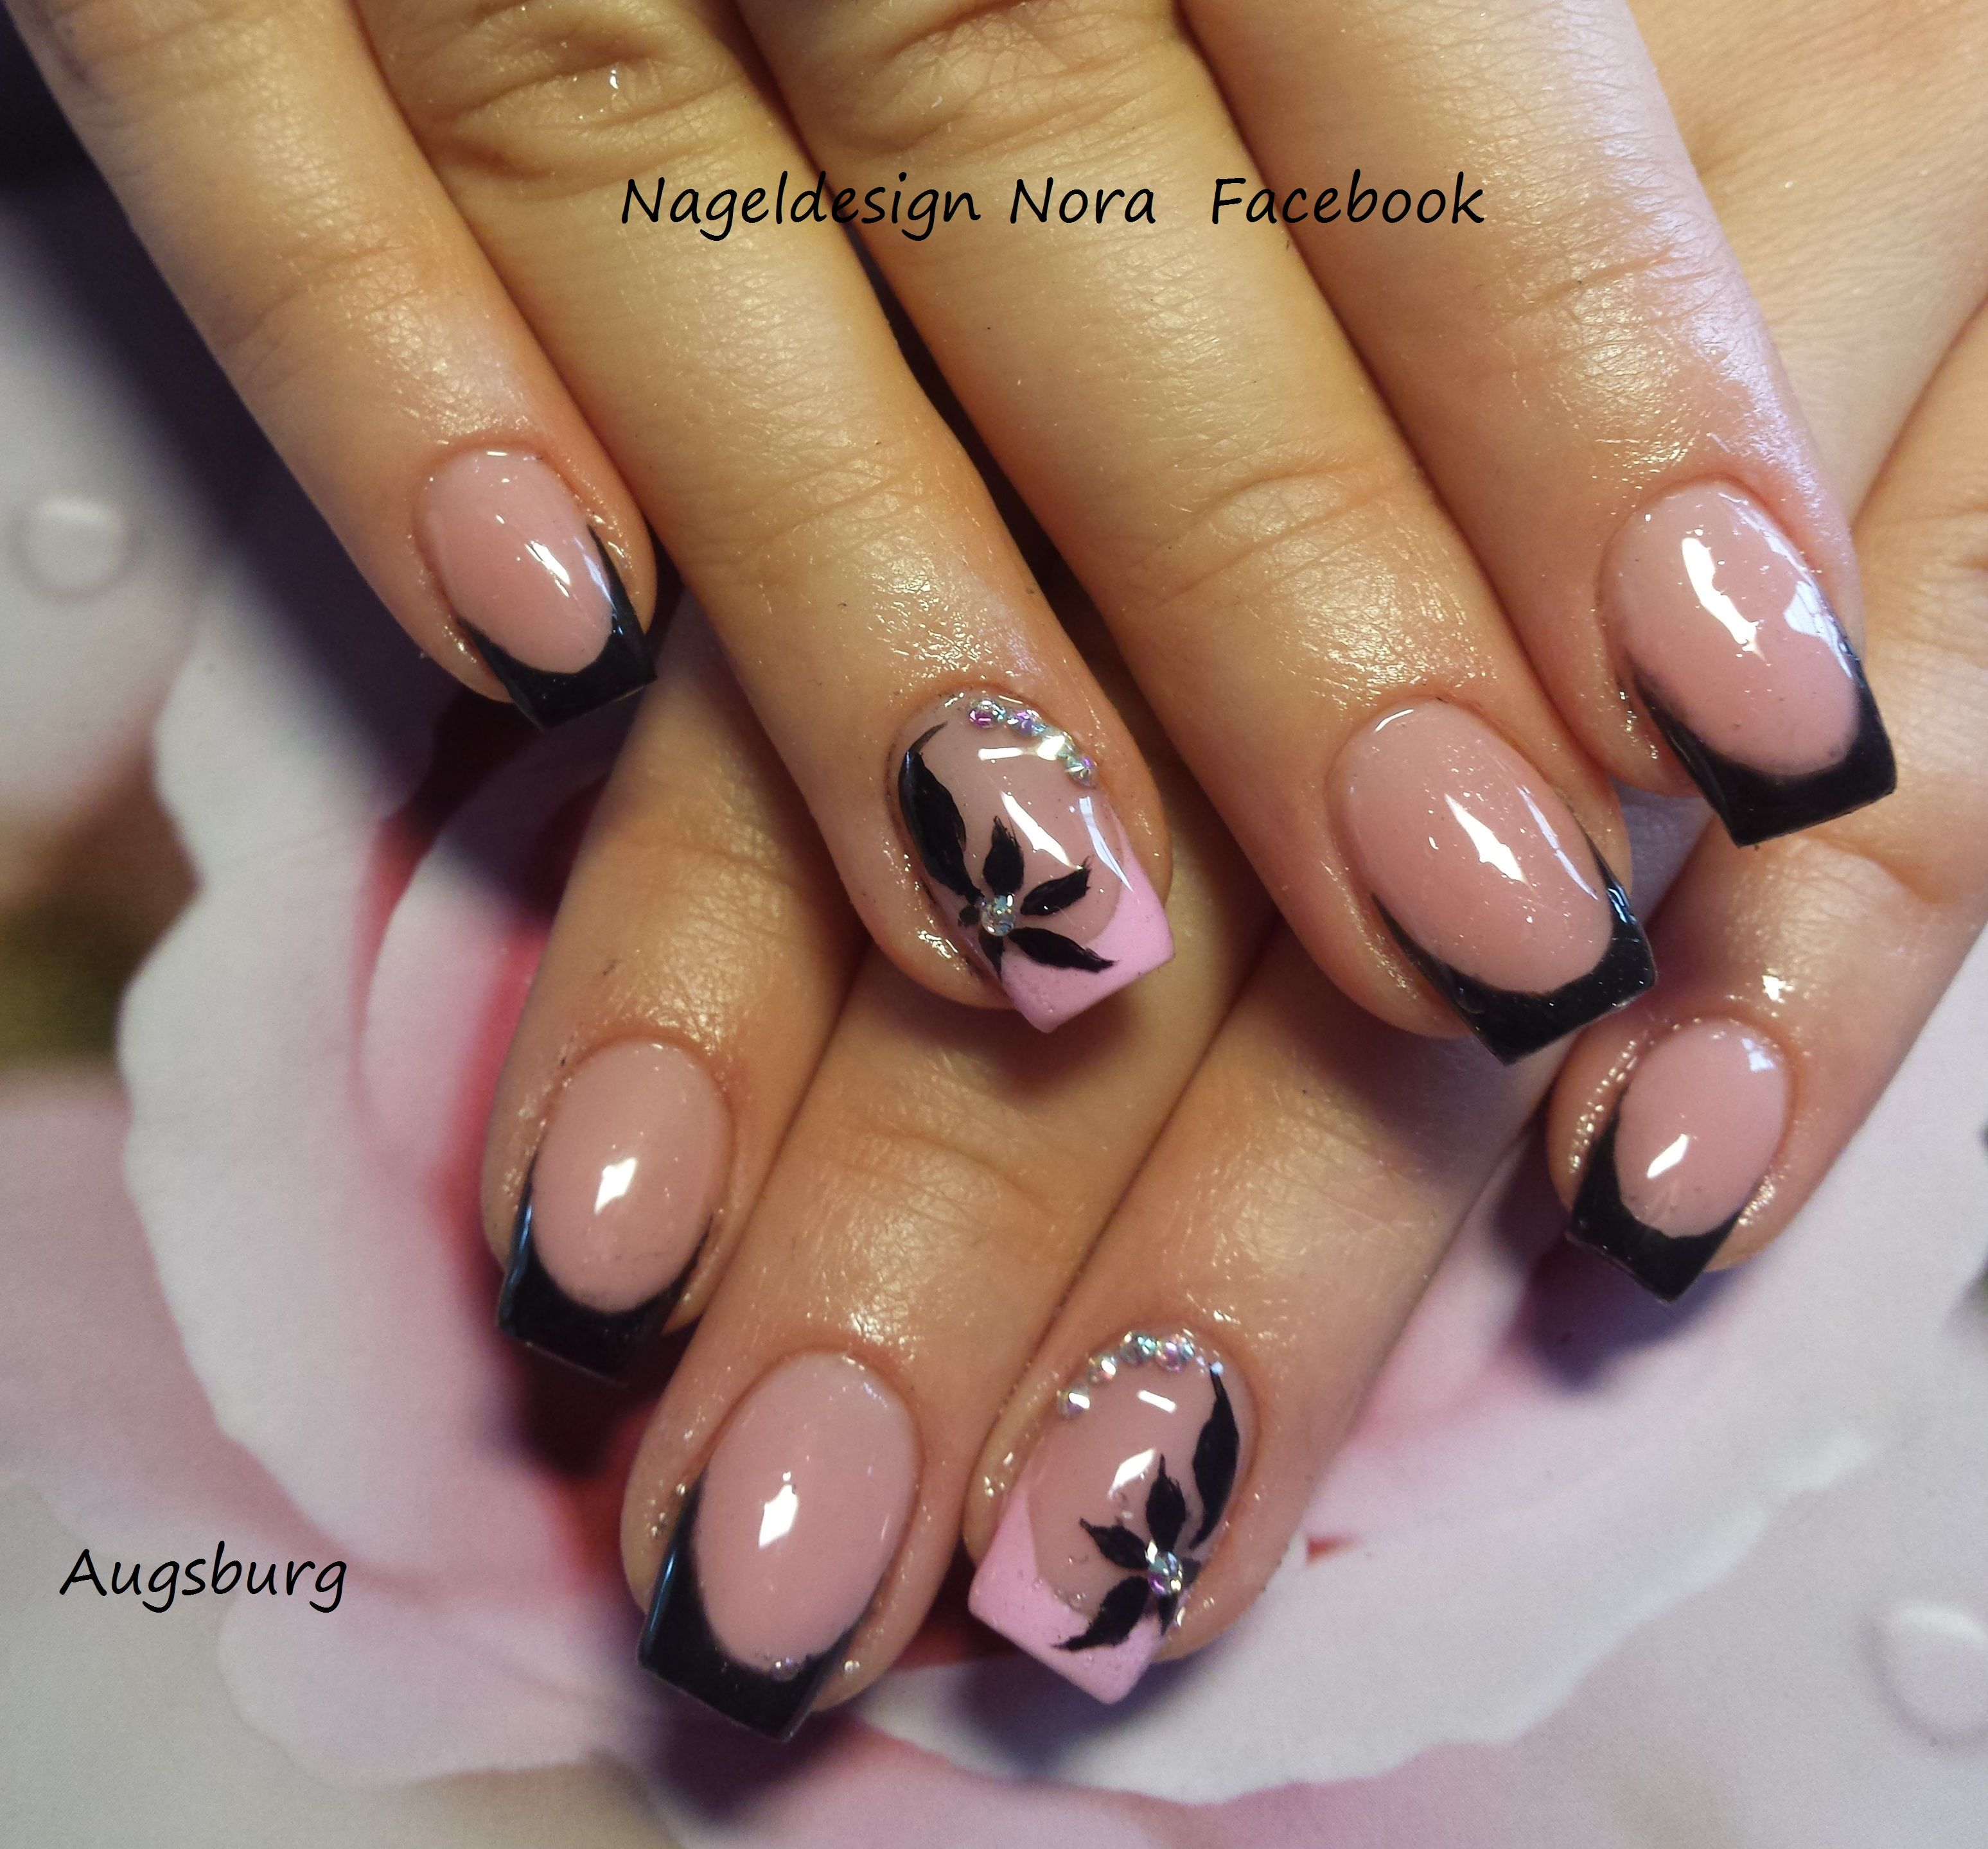 Nails by Nageldesign Nora from www.nageldesign-galerie.de ...